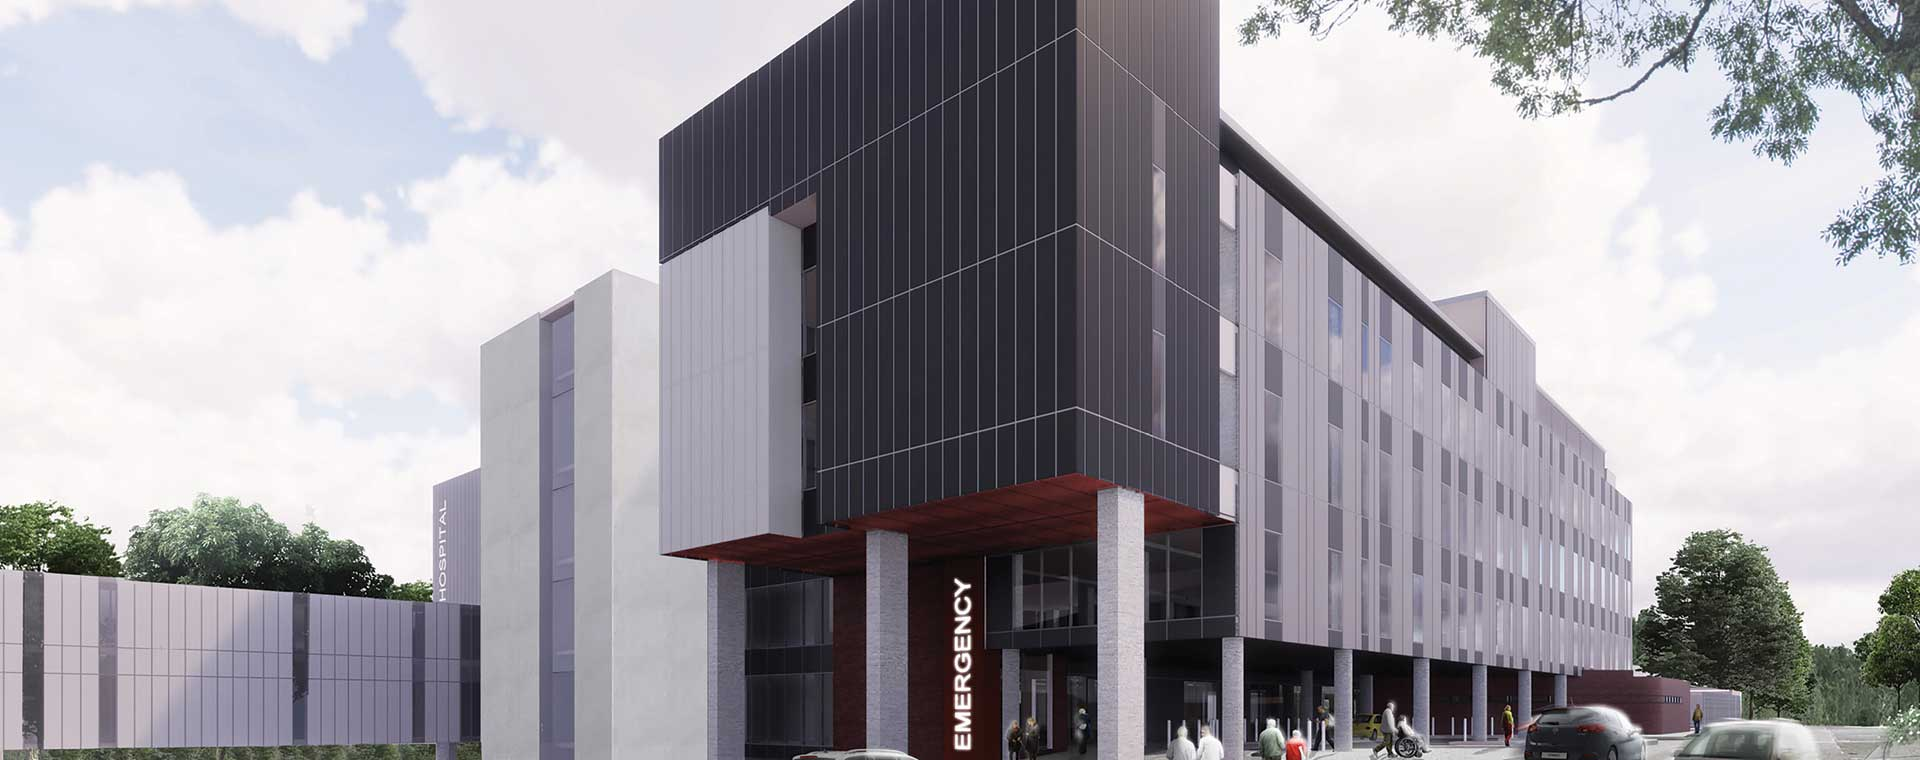 Wyong hospital redevelopment design